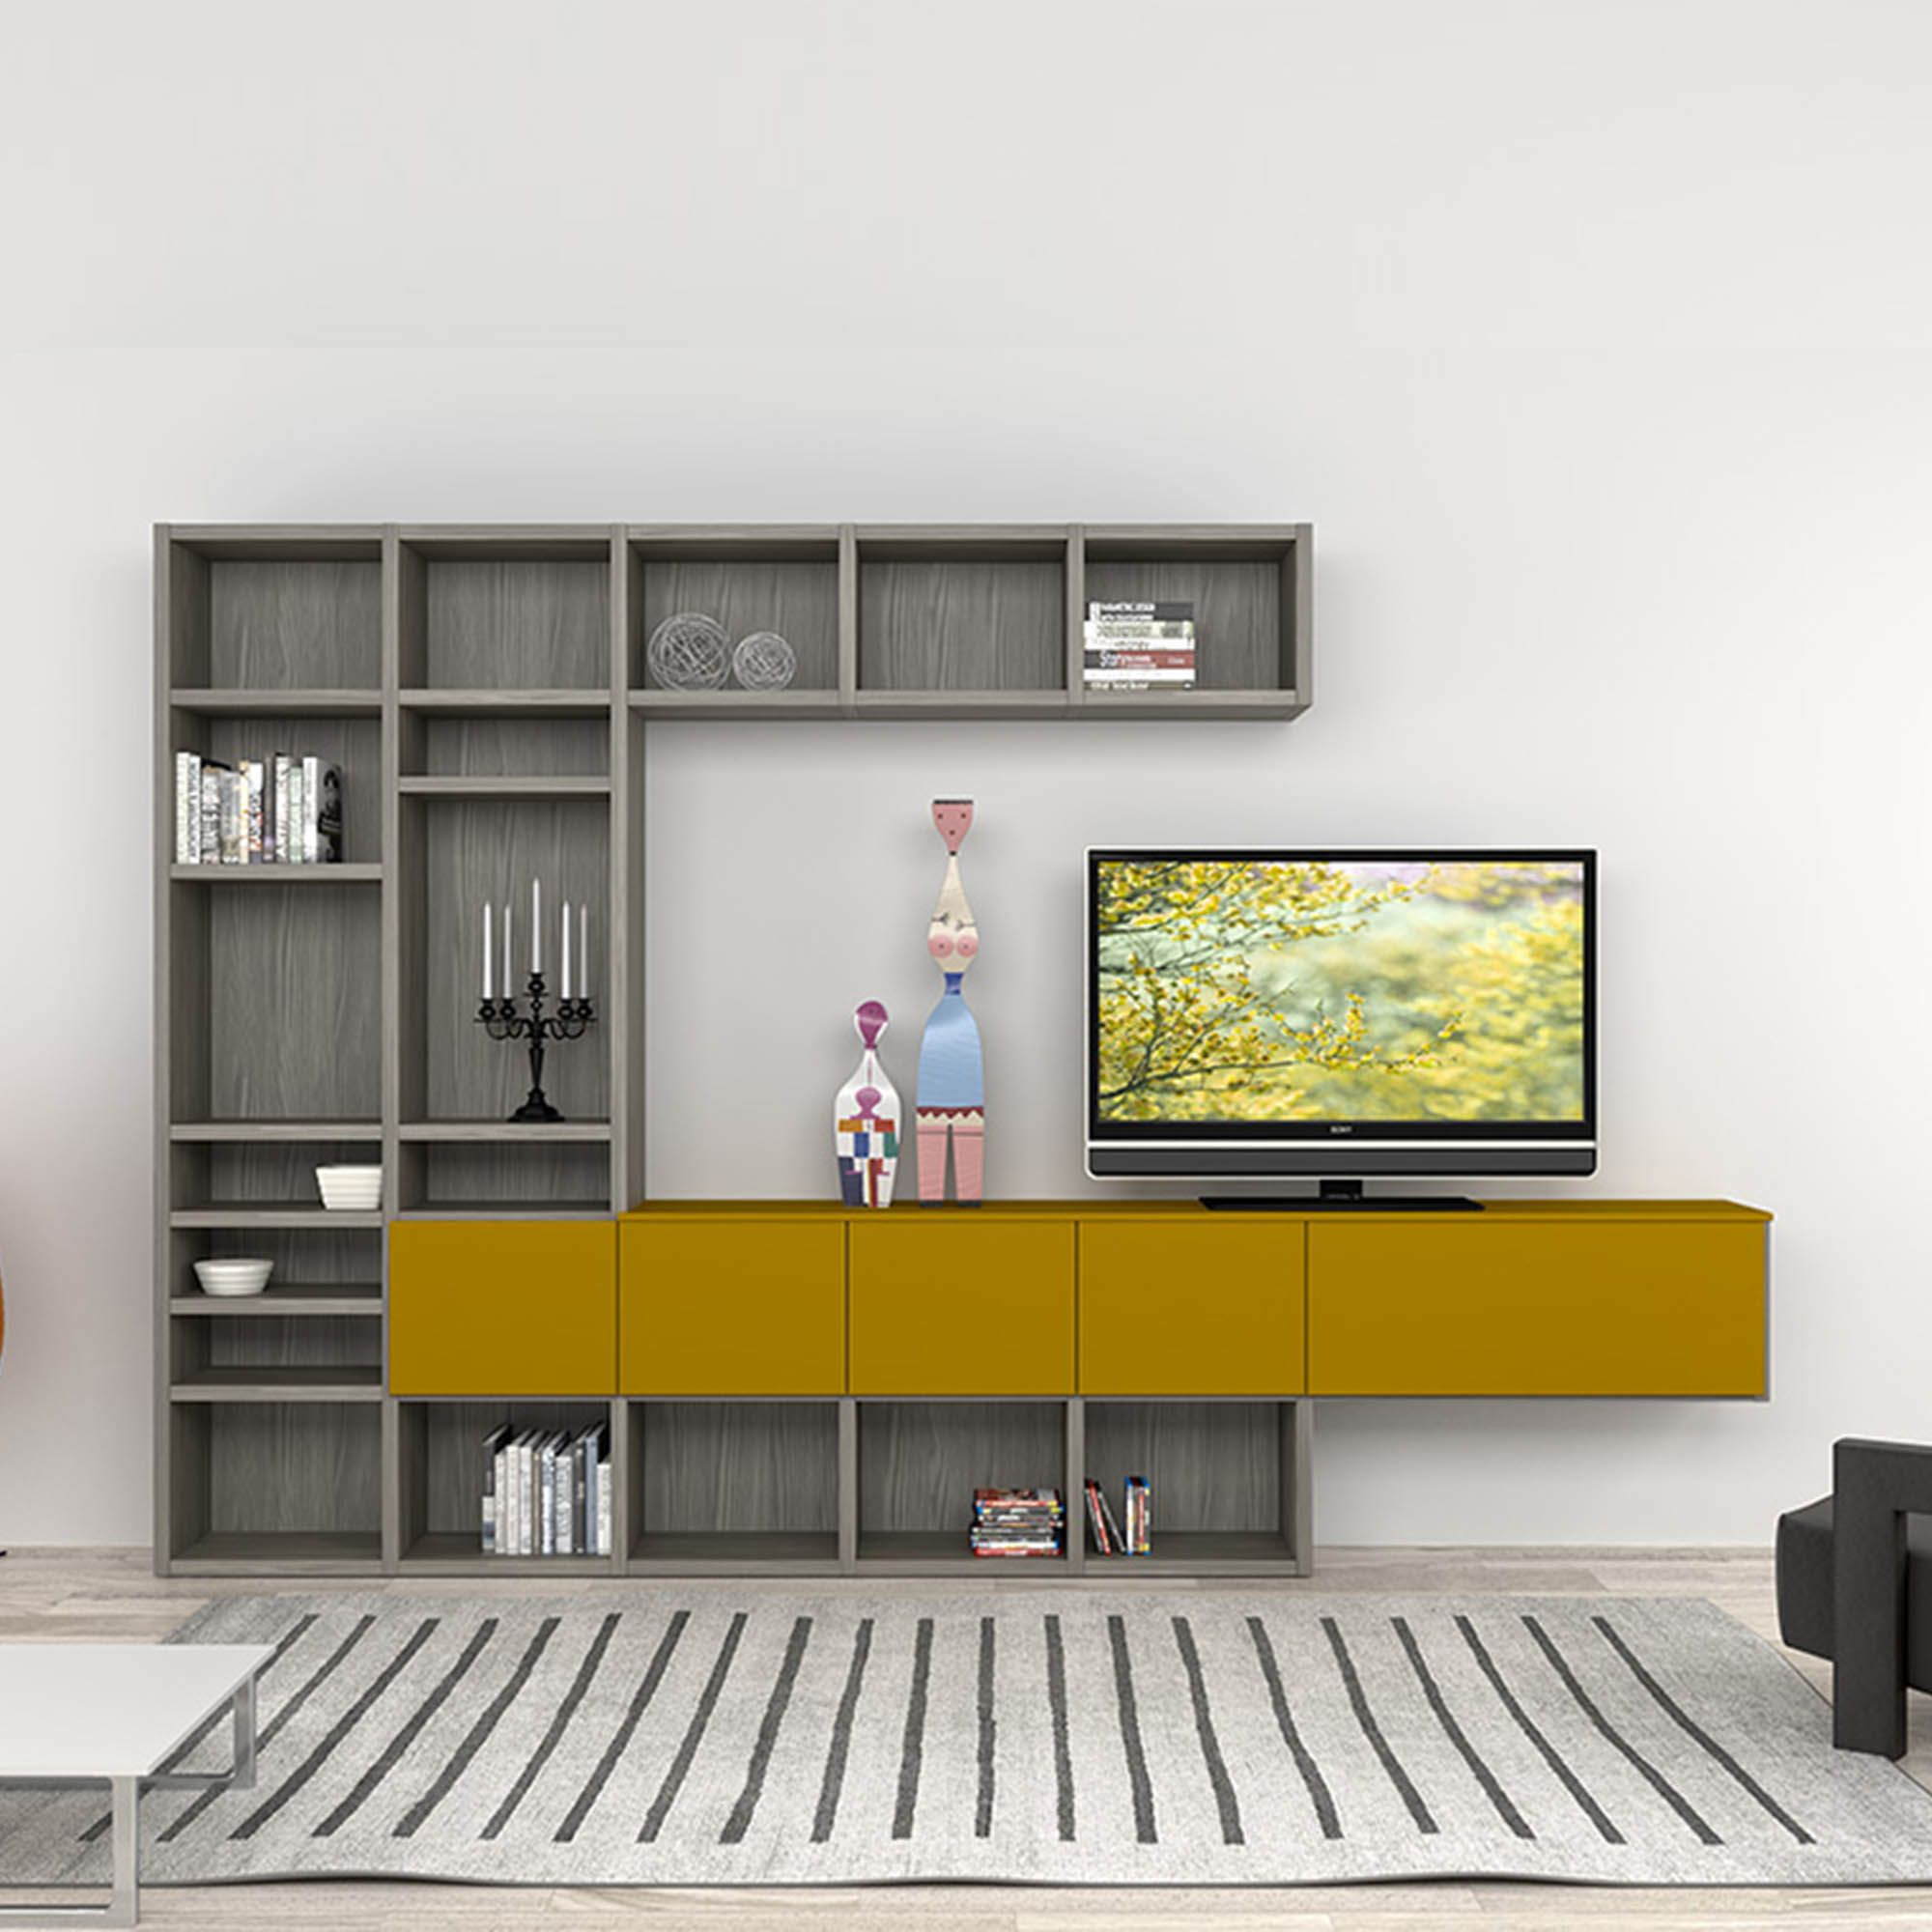 Modern Italian Tv Stand In Composition Of Grey And Mustard Colours Sen At My Italian Living Ltd Living Room Tv Wall Wall Tv Stand Trendy Living Rooms